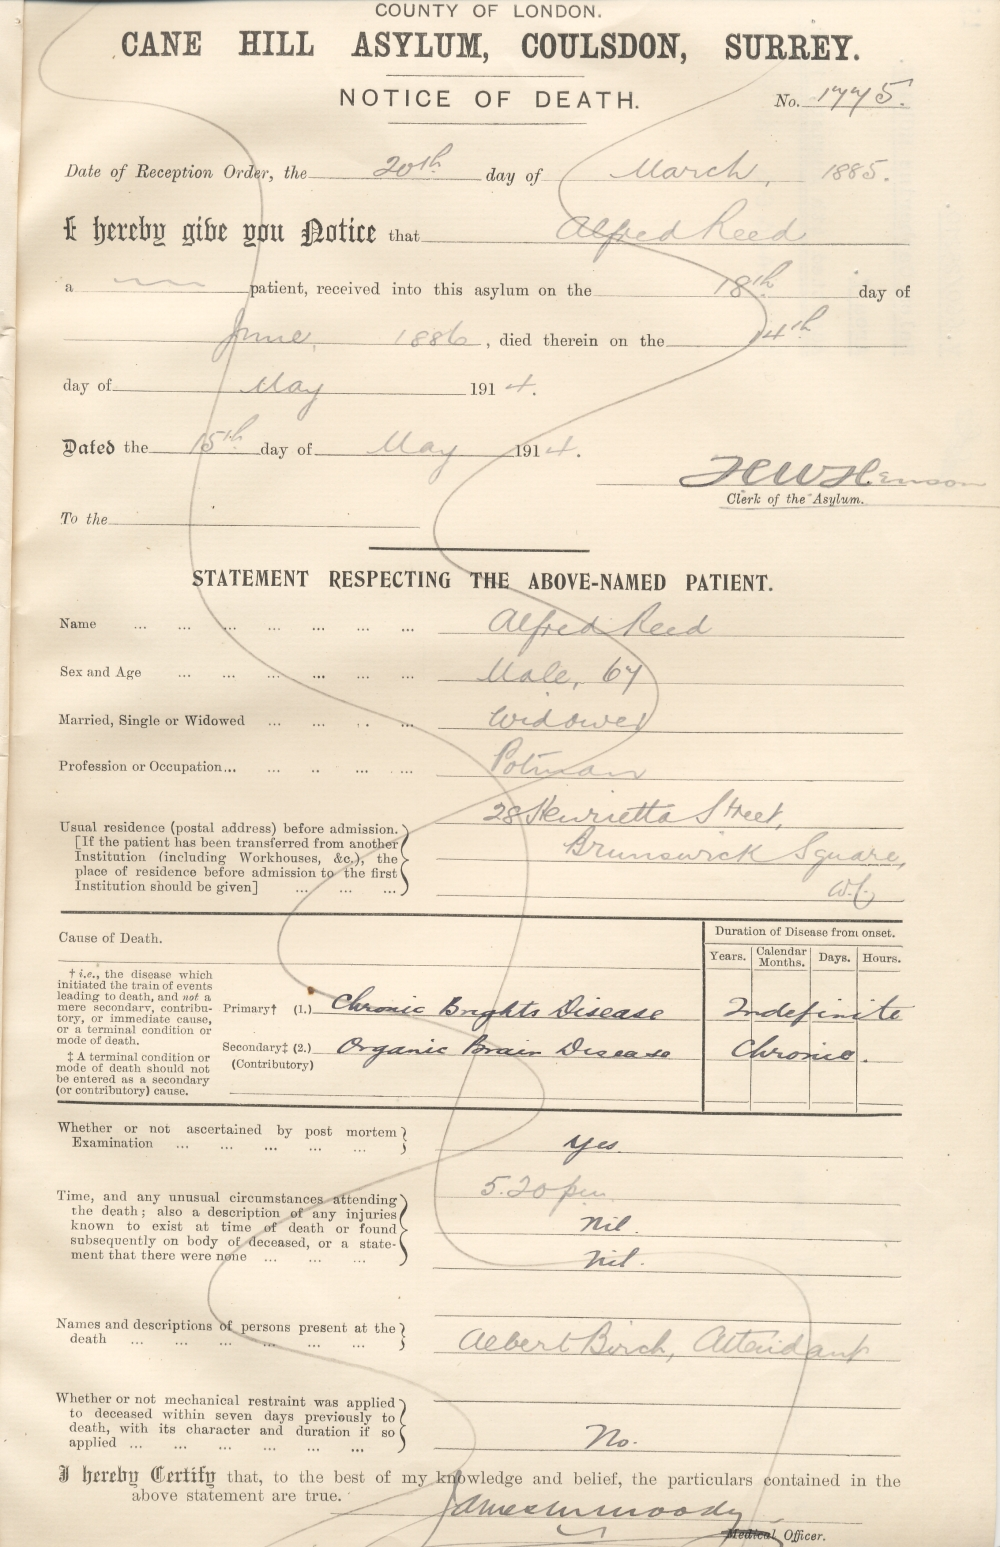 death certificate from 1914, signed by the first medical superintendent - james moody